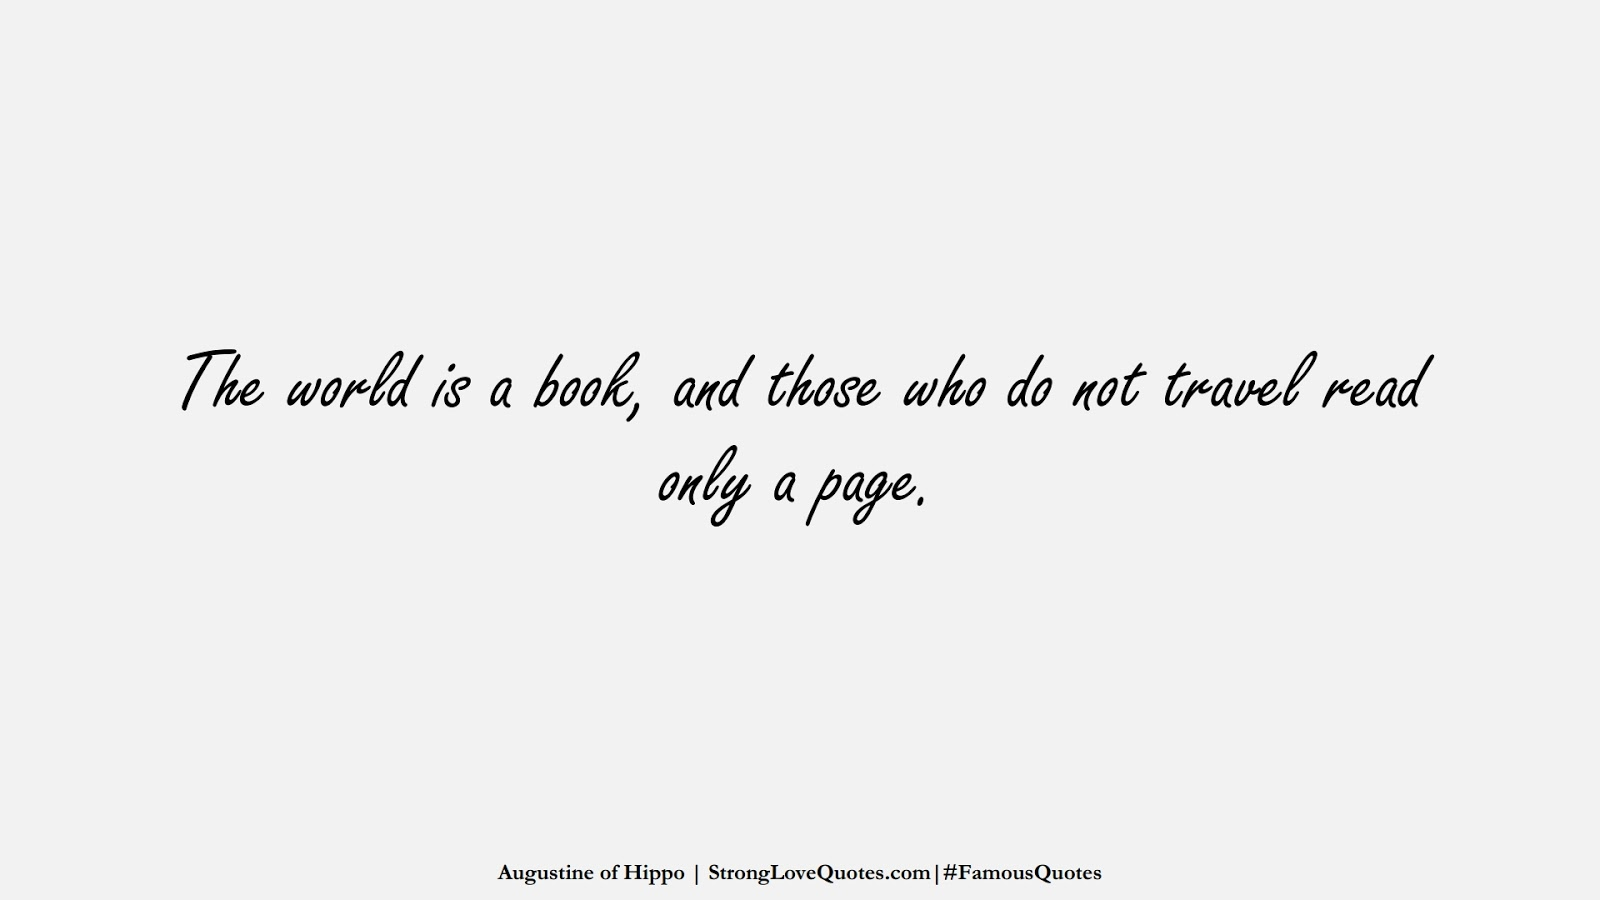 The world is a book, and those who do not travel read only a page. (Augustine of Hippo);  #FamousQuotes